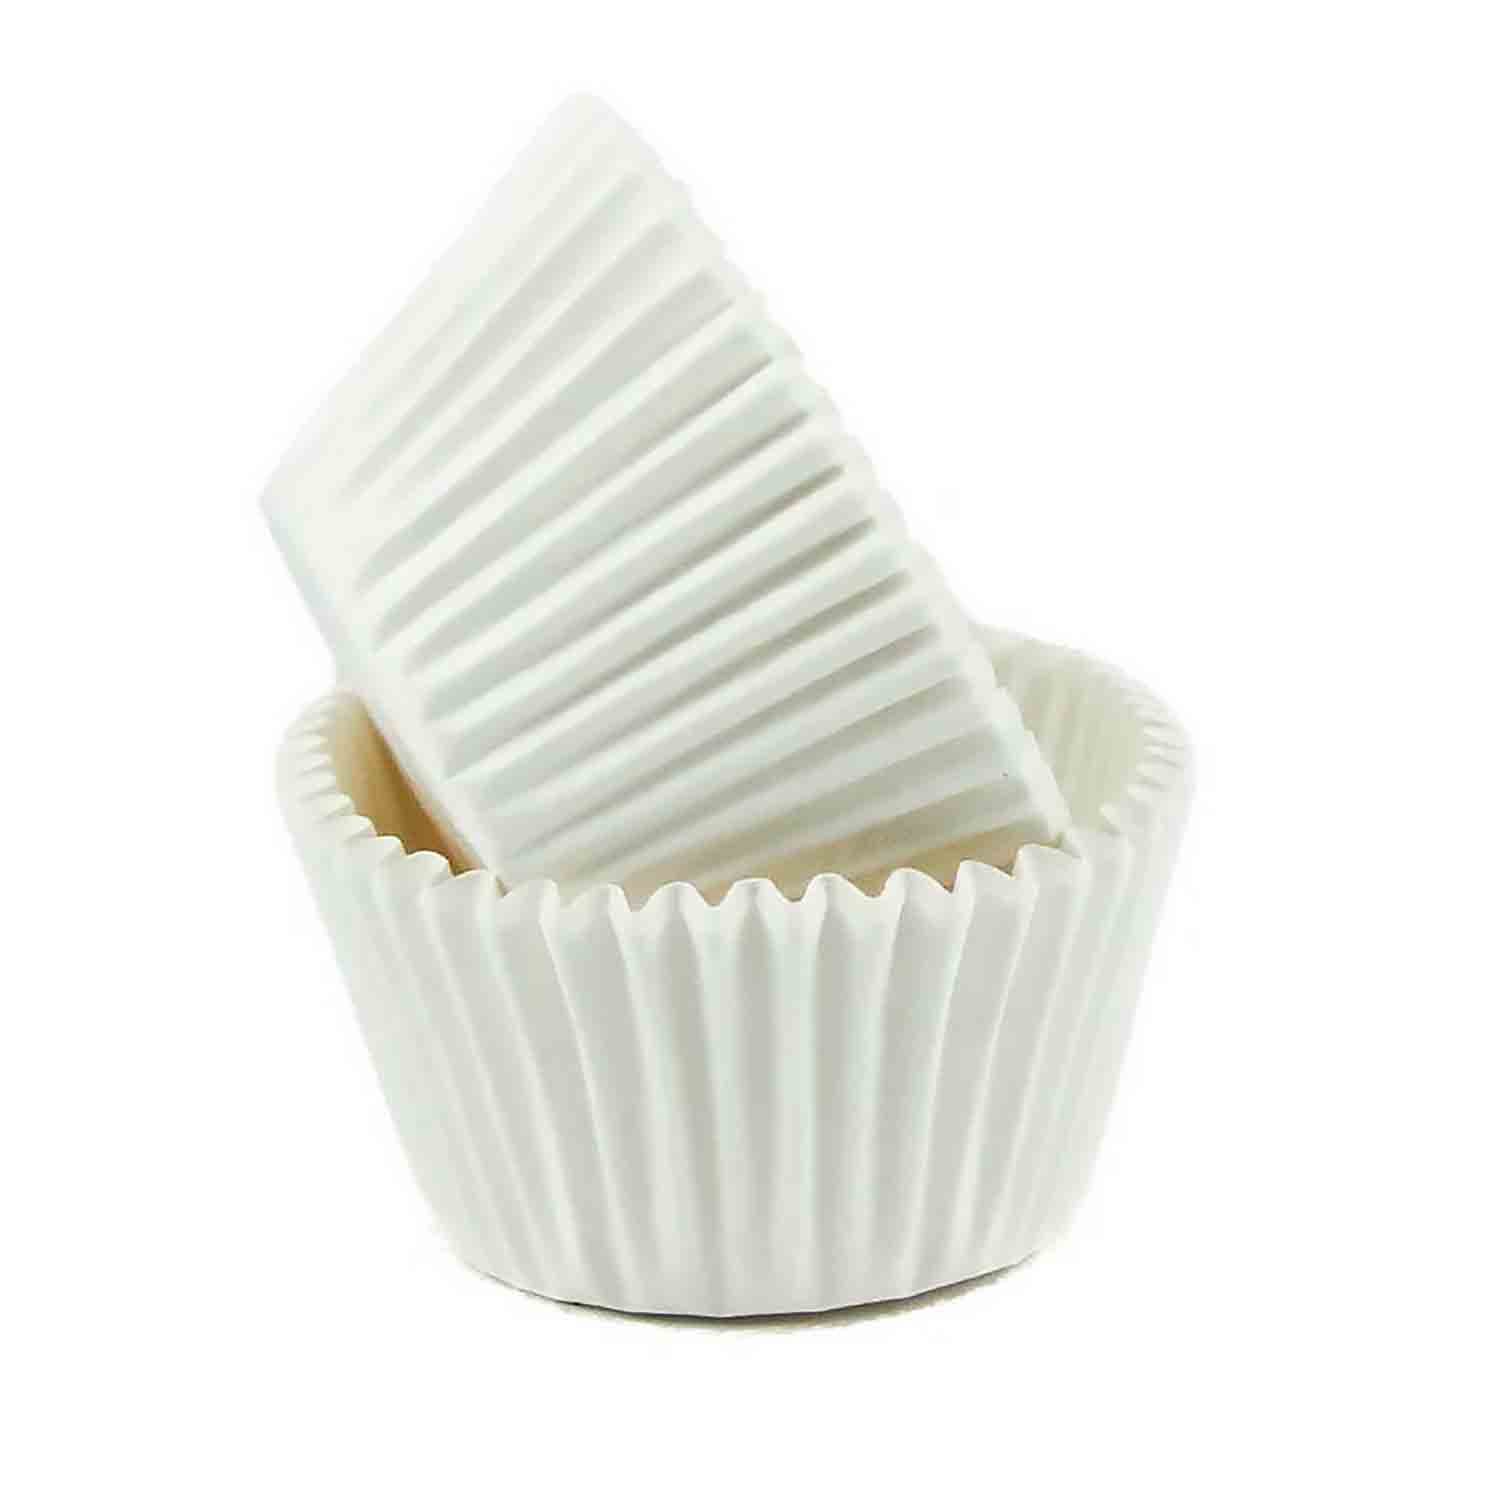 White Candy / Baking Cup #9